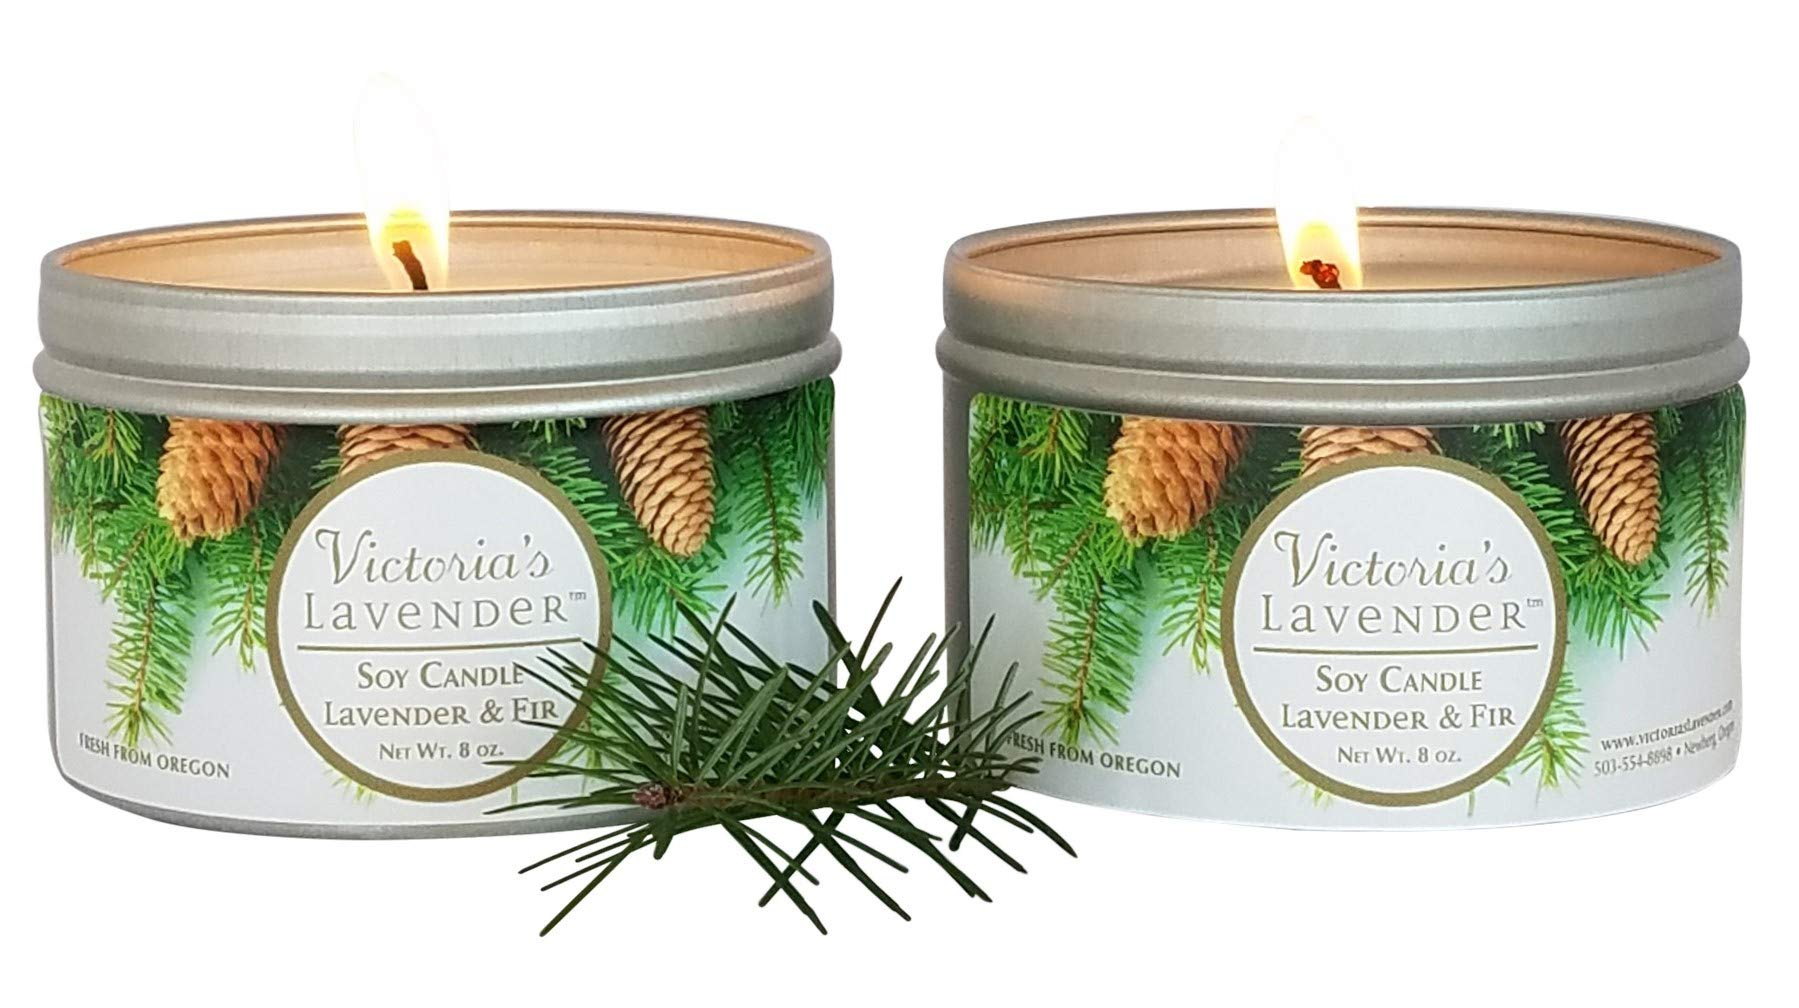 Victoria's Lavender Soy Wax Scented Candles | Essential Oil Aromatherapy Candle (2 Pack) - Lavender & Fir by Victoria's Lavender